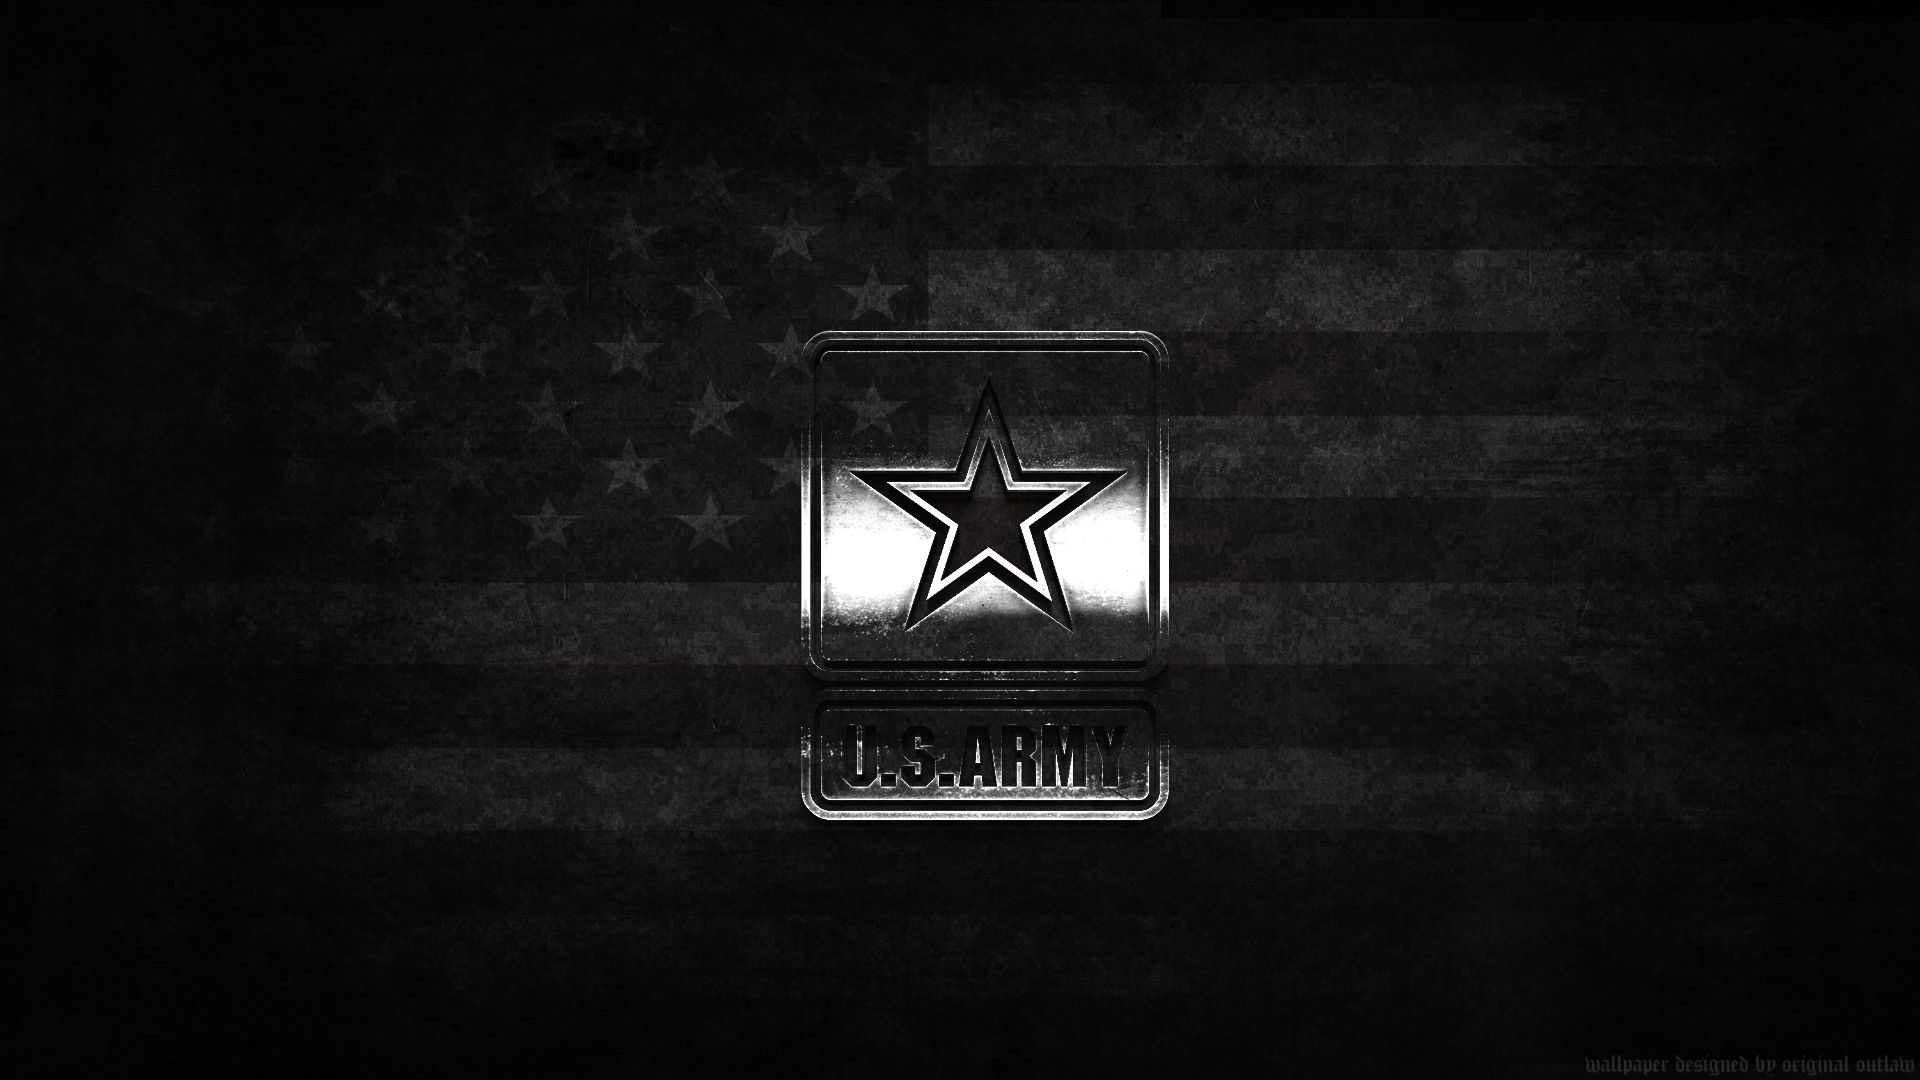 Us Army Army Wallpaper Us Army Military Wallpaper